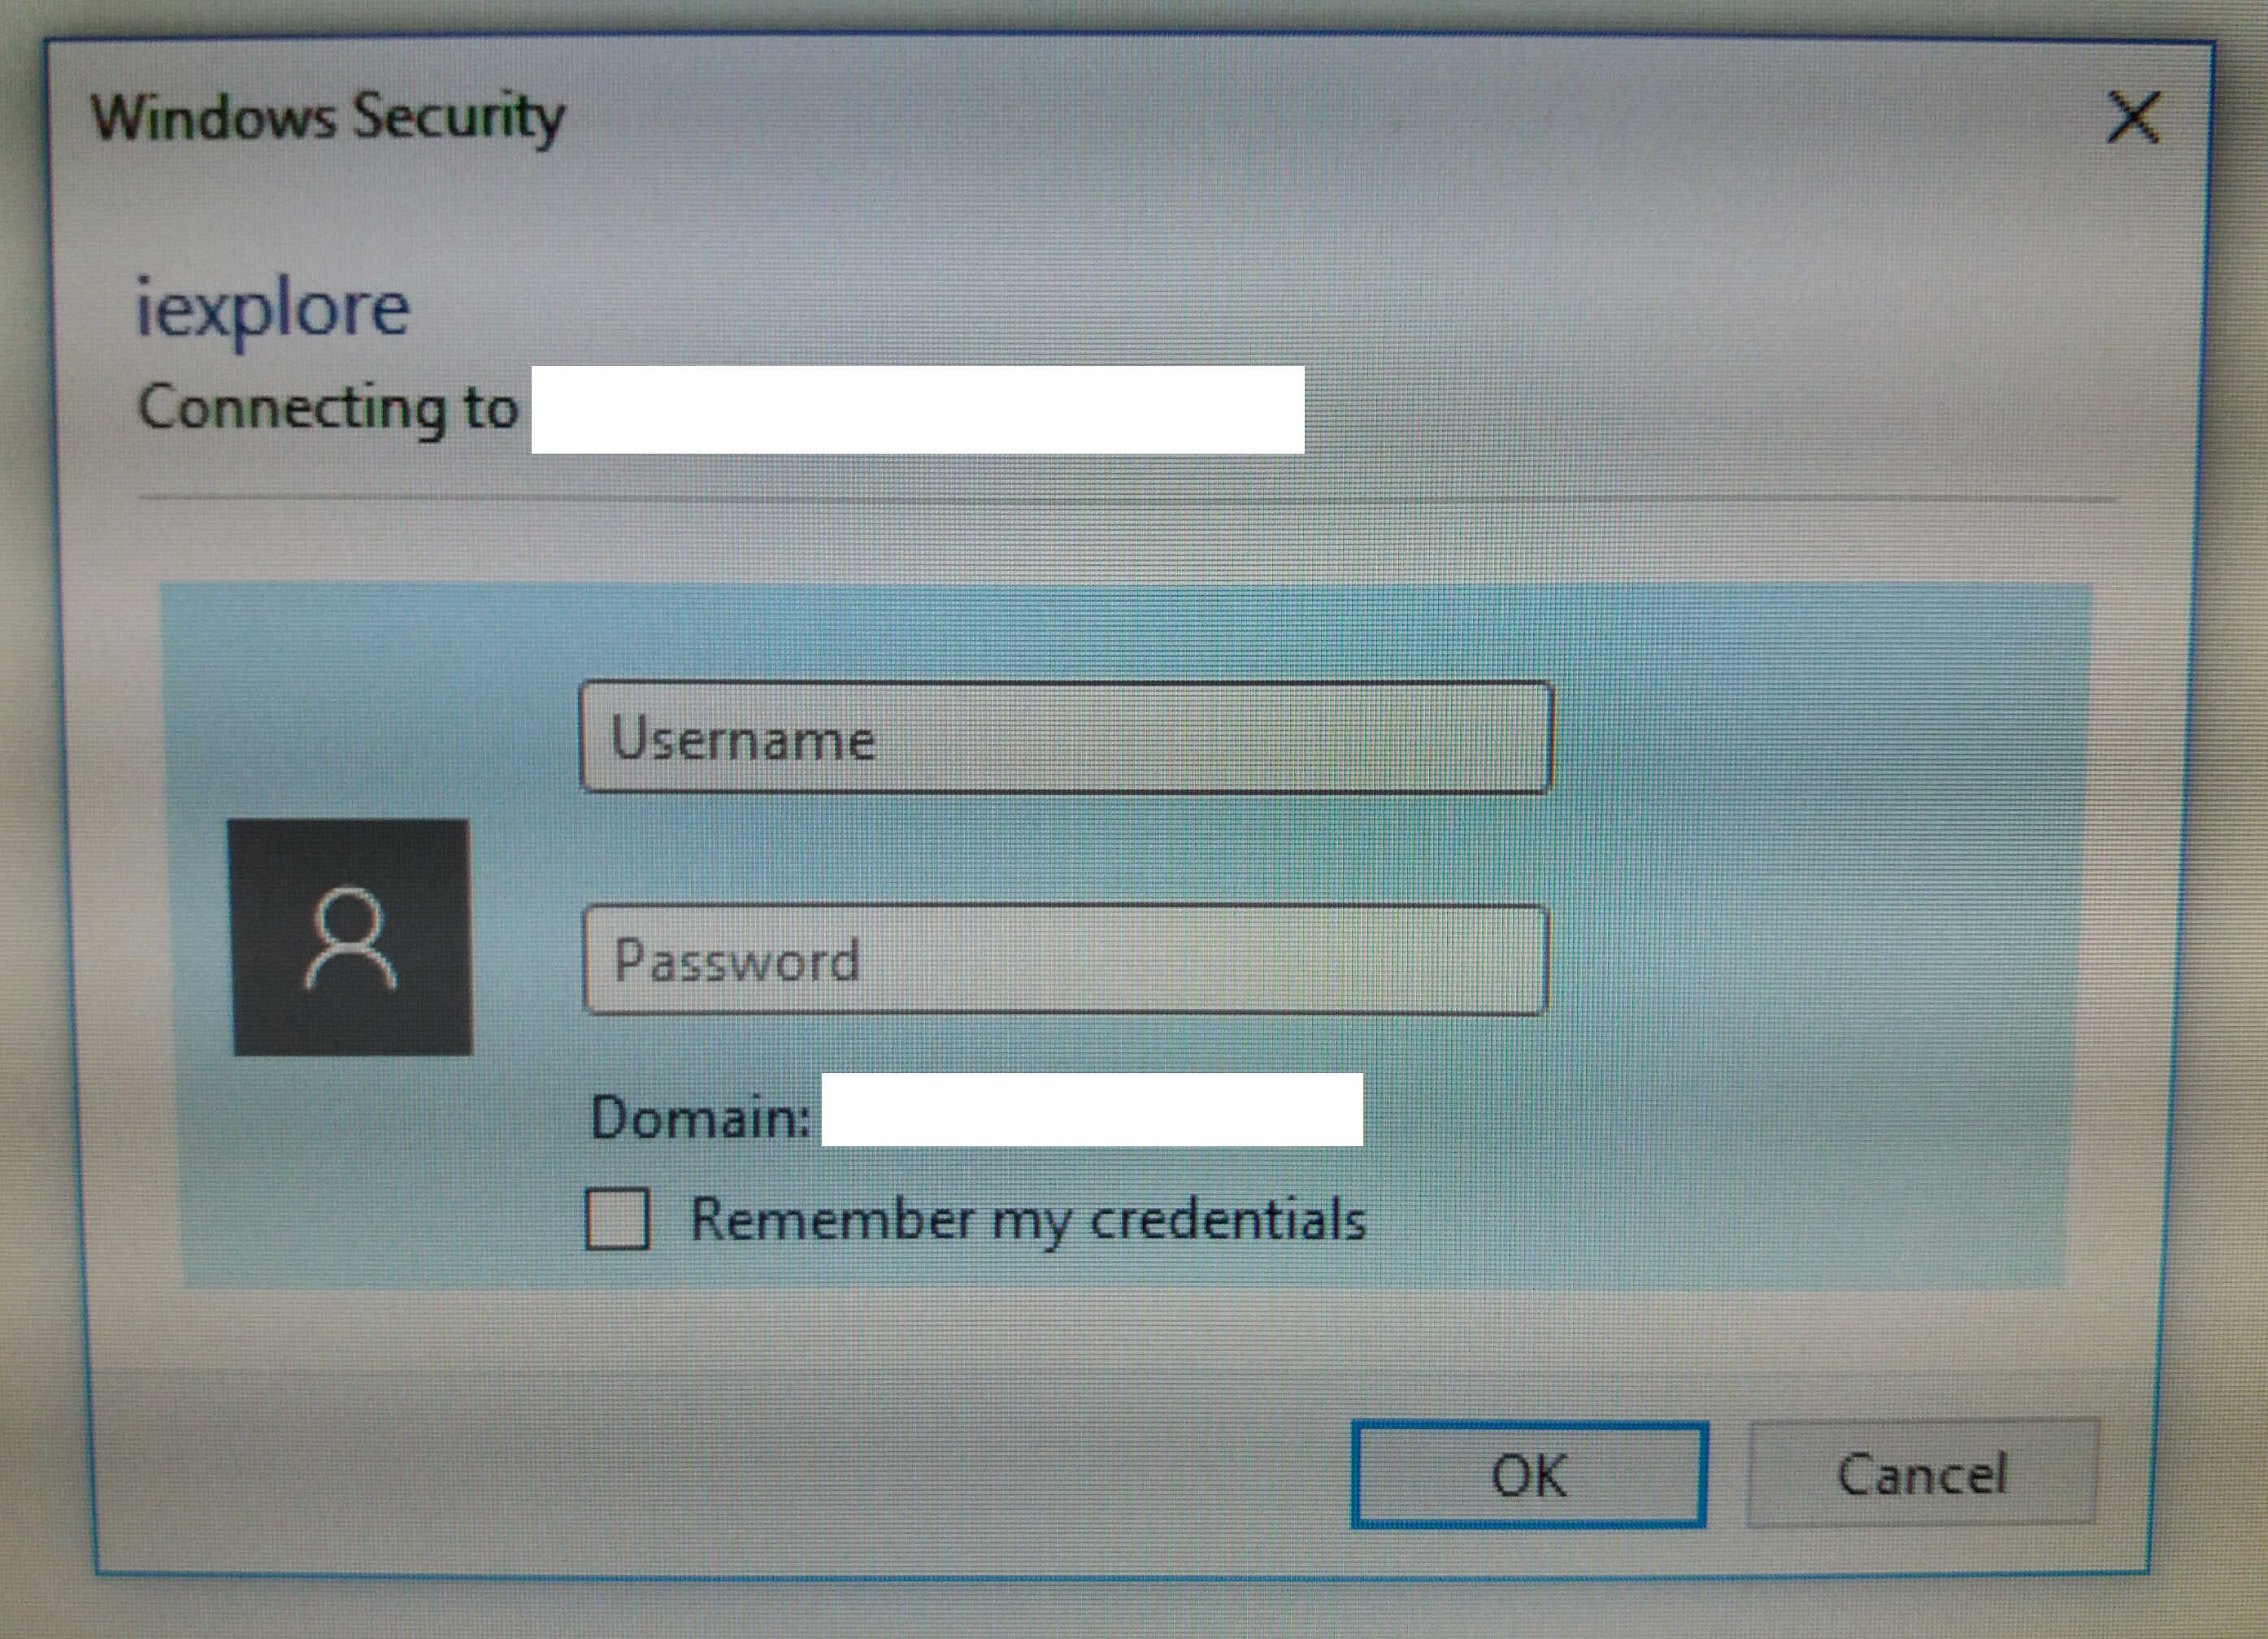 Windows Security popup on CRM client machine - Microsoft